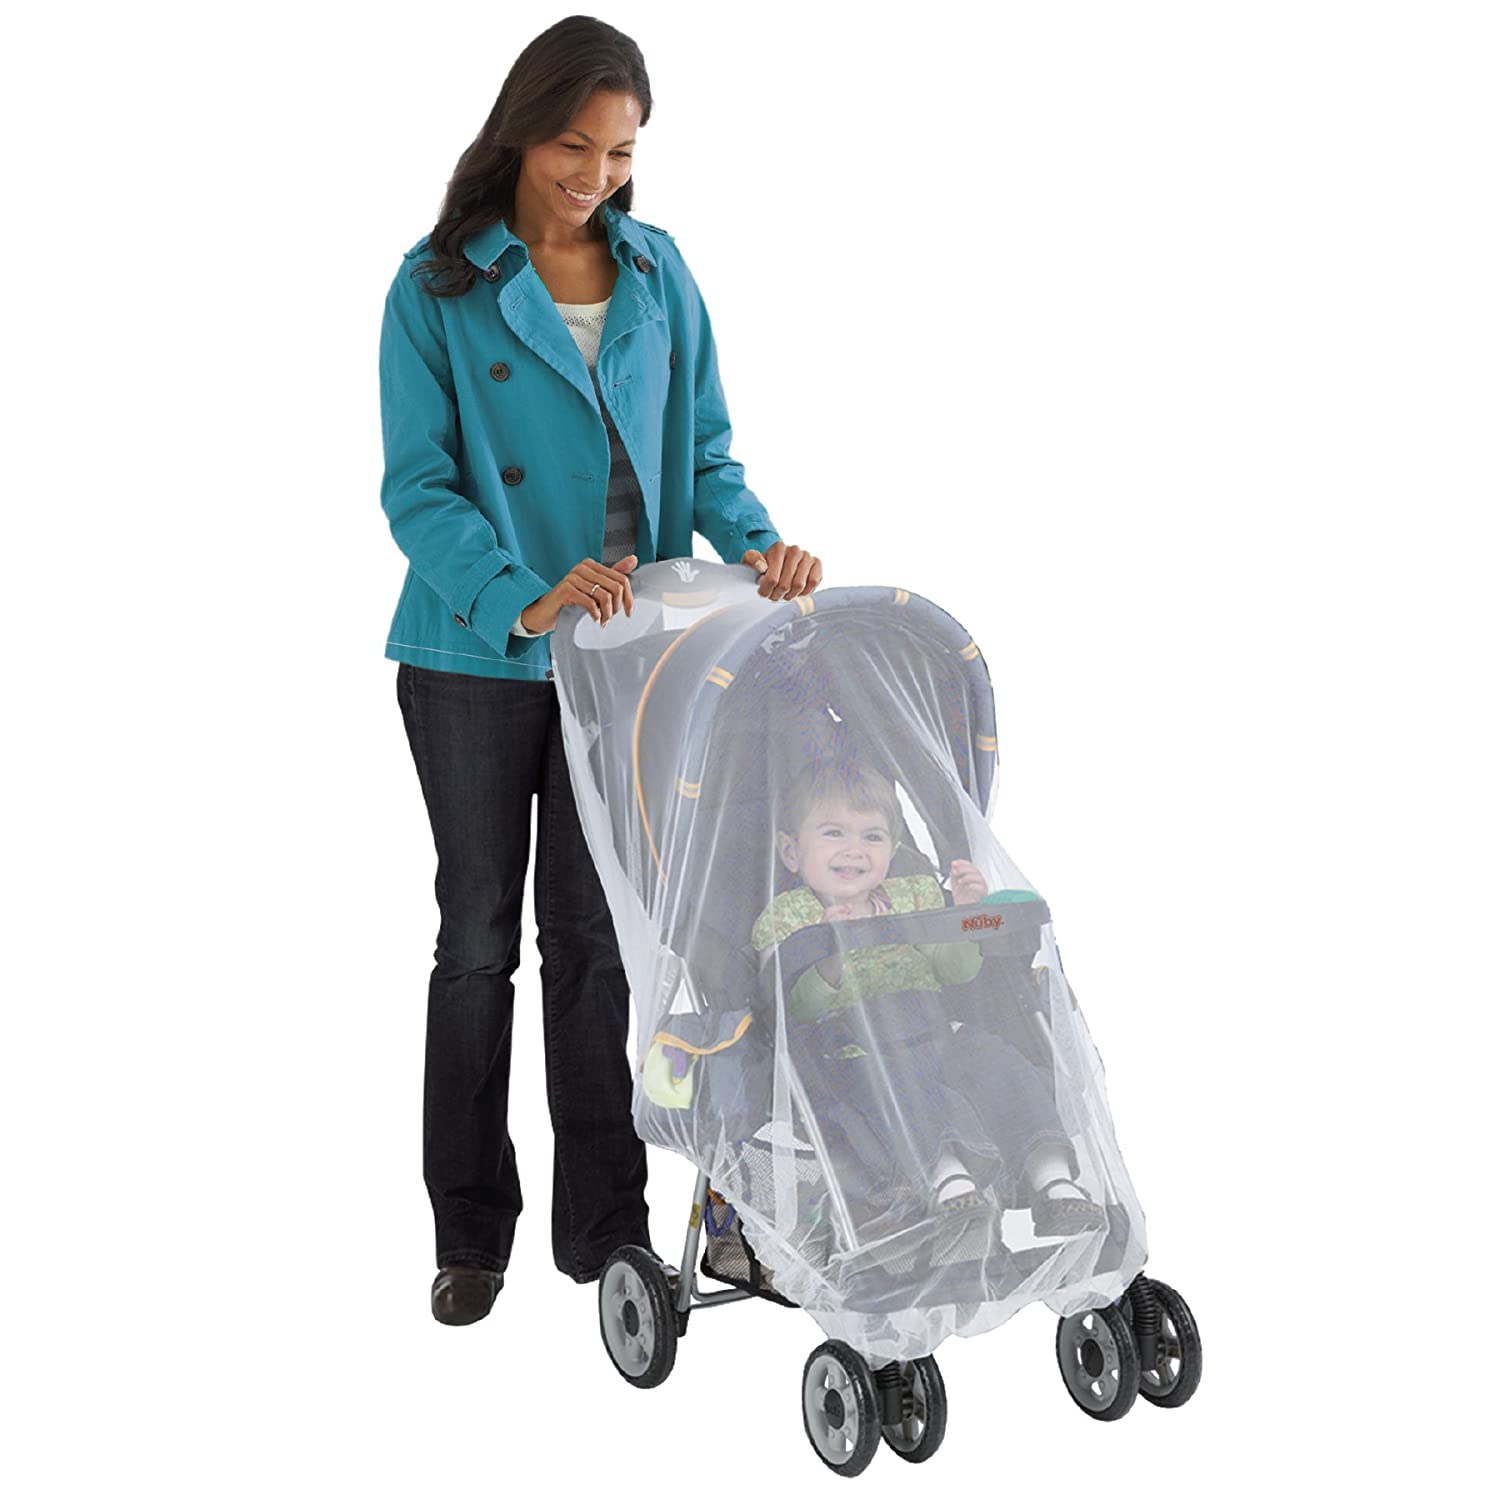 Nuby Baby Strollers Universal Size Mosquito Net, White 120032